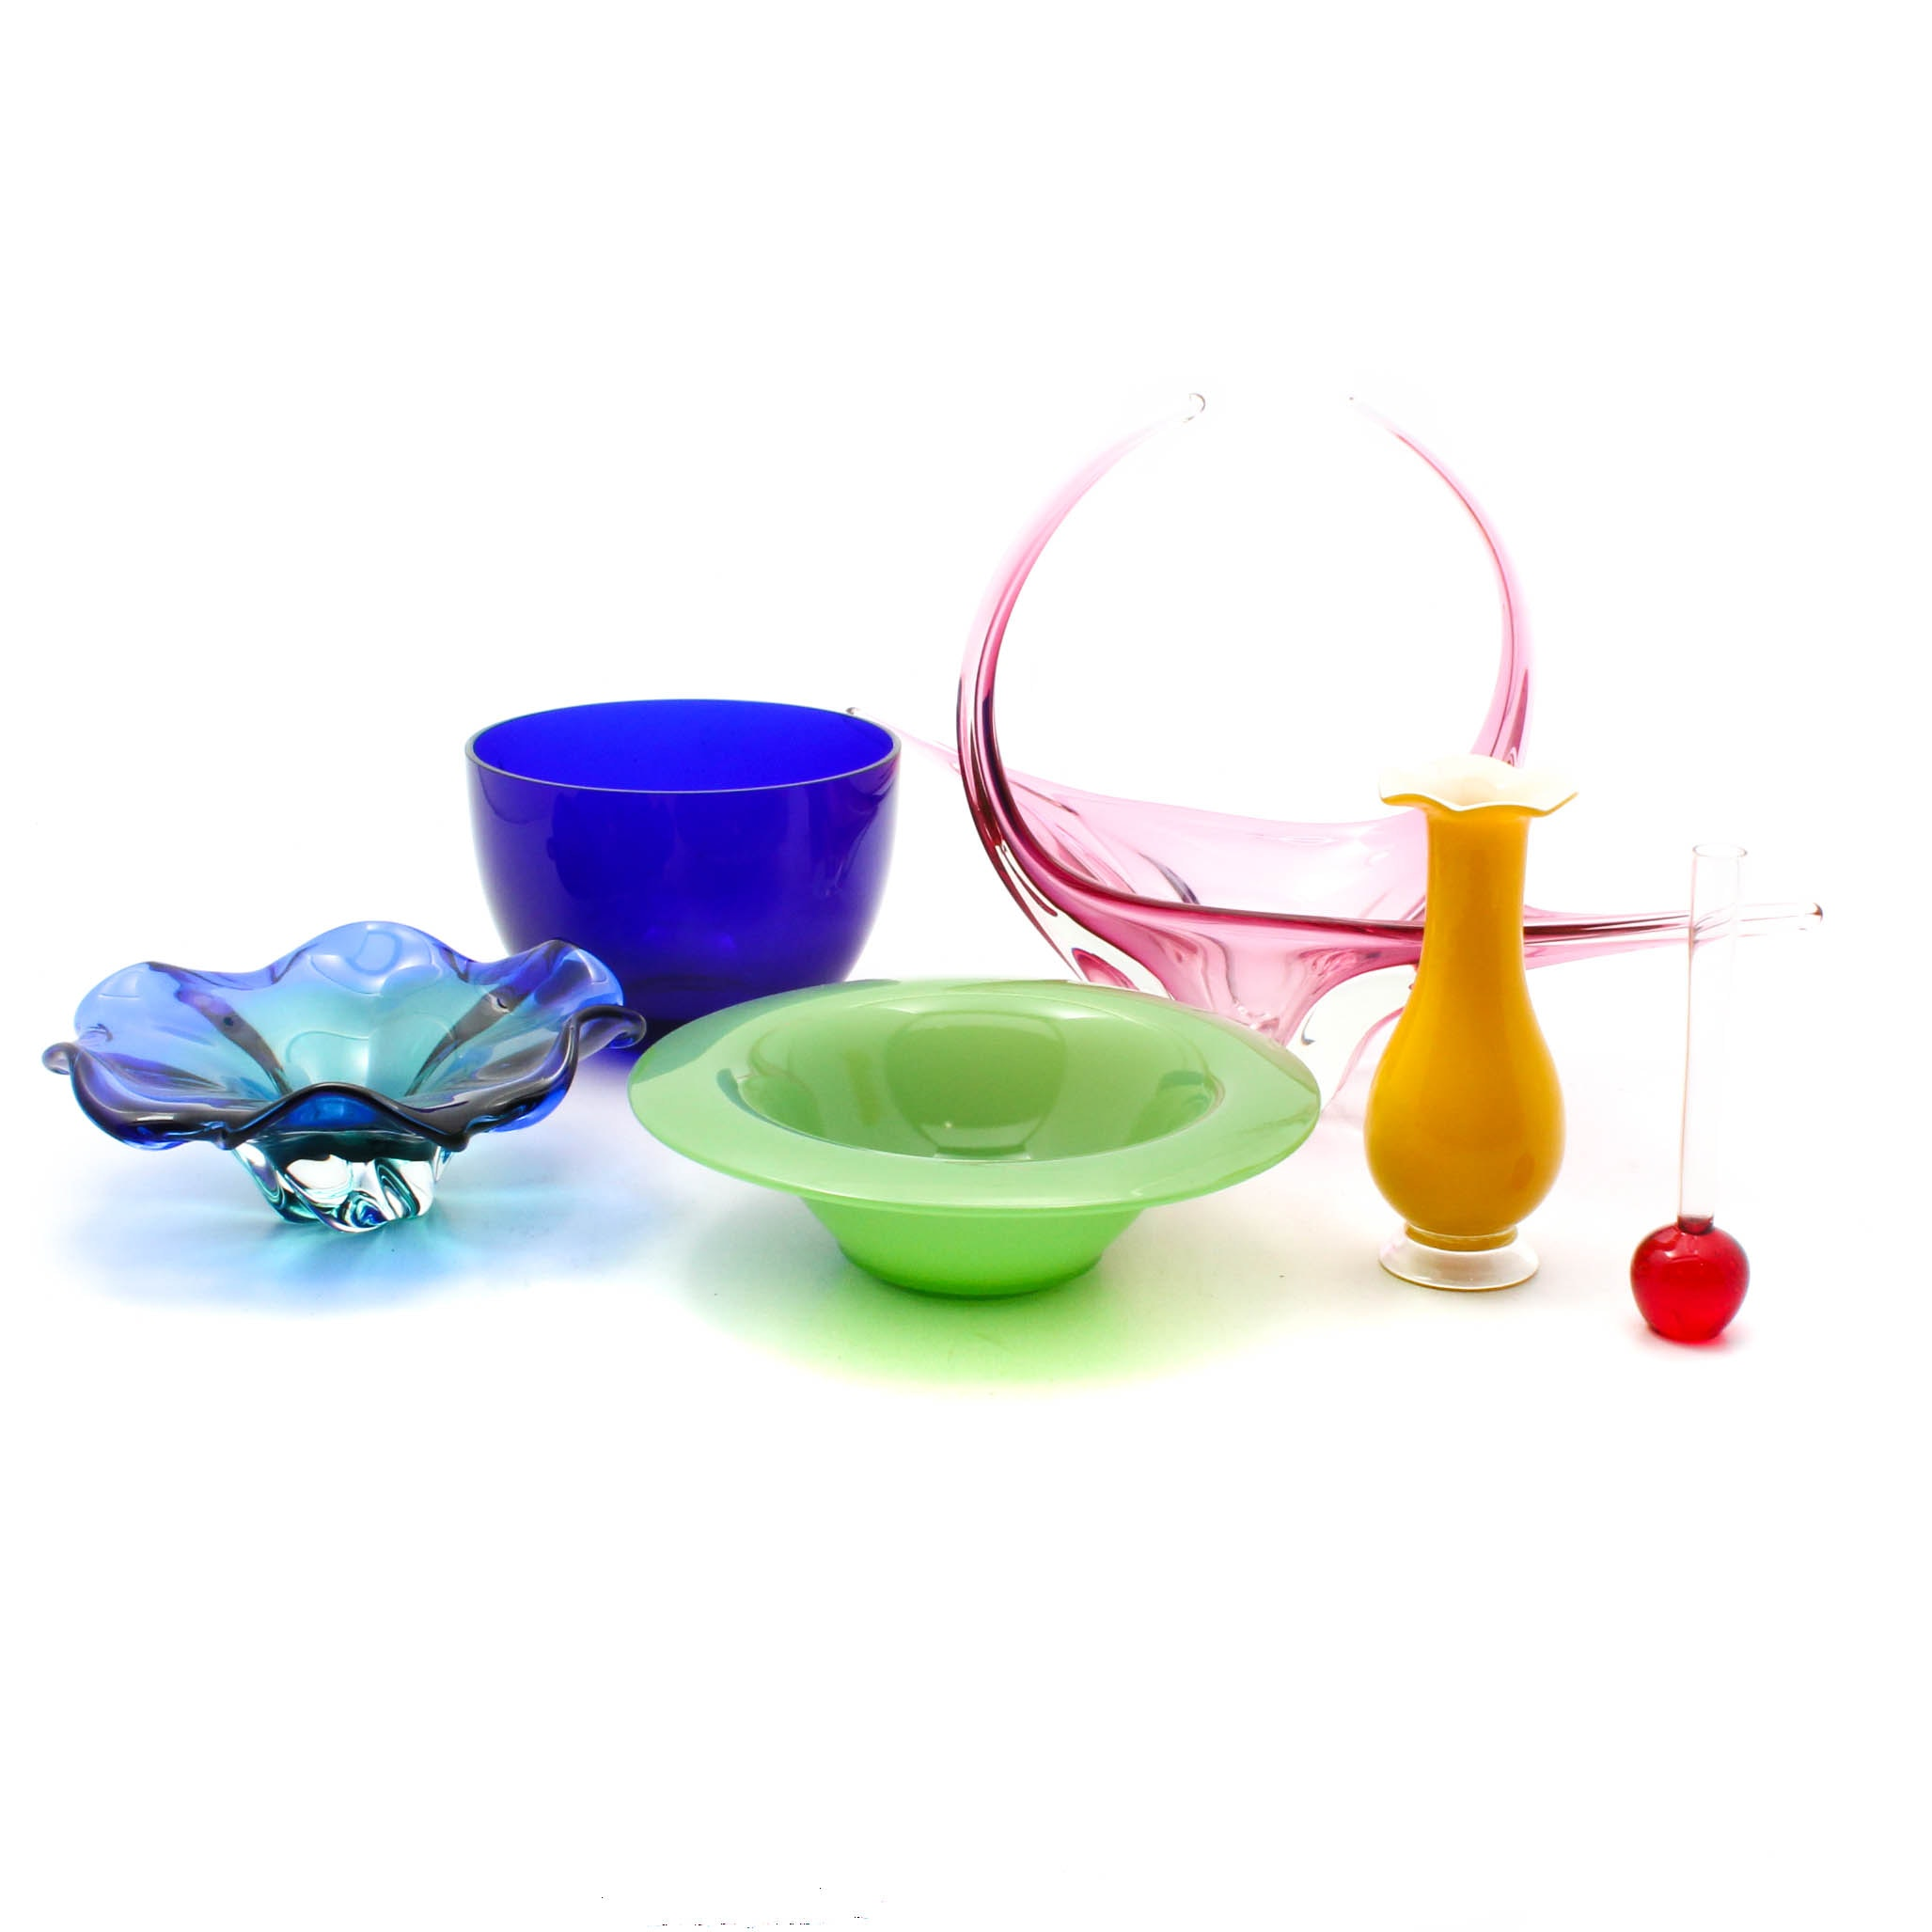 Art Glass Tableware Collection including Villeroy & Boch